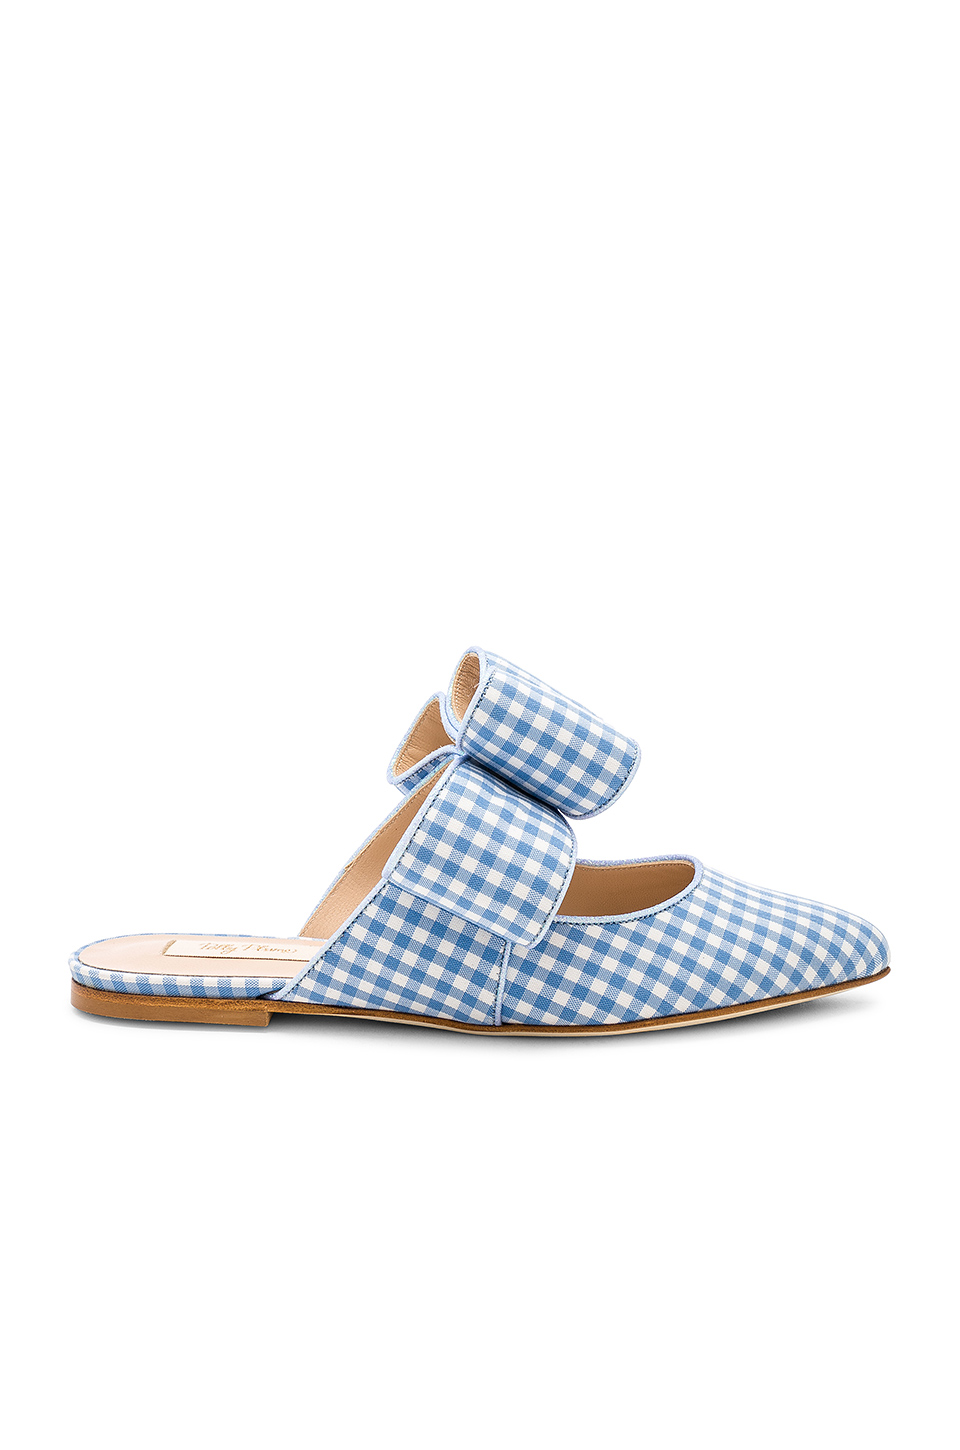 Polly Plume Kiki Bow Joe Le Taxi Slide in Baby Blue